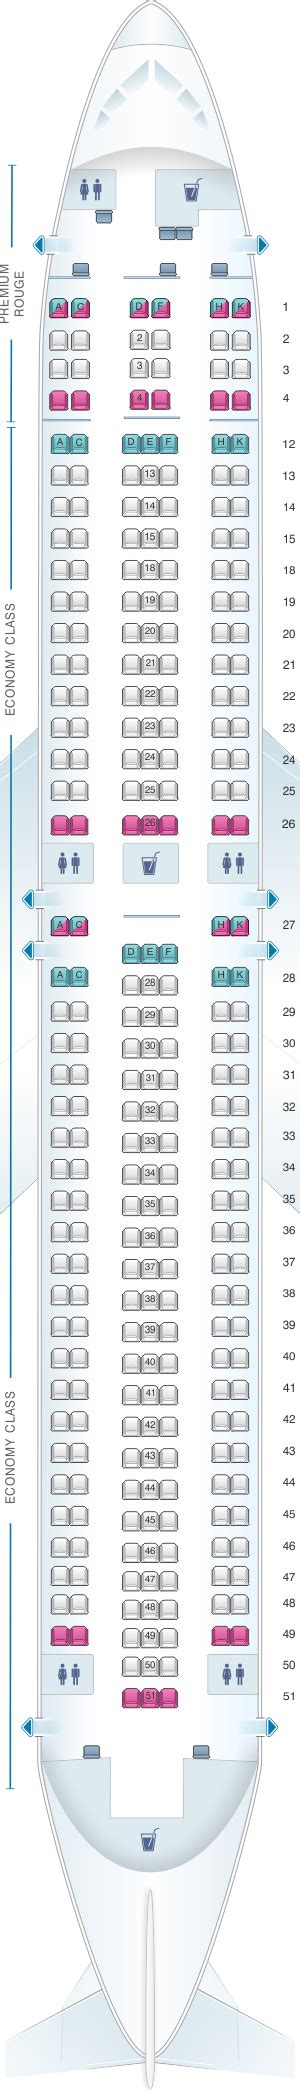 Seat Map Boeing Air Canada by Plan De Cabine Air Canada Boeing B767 300er 763 Rouge